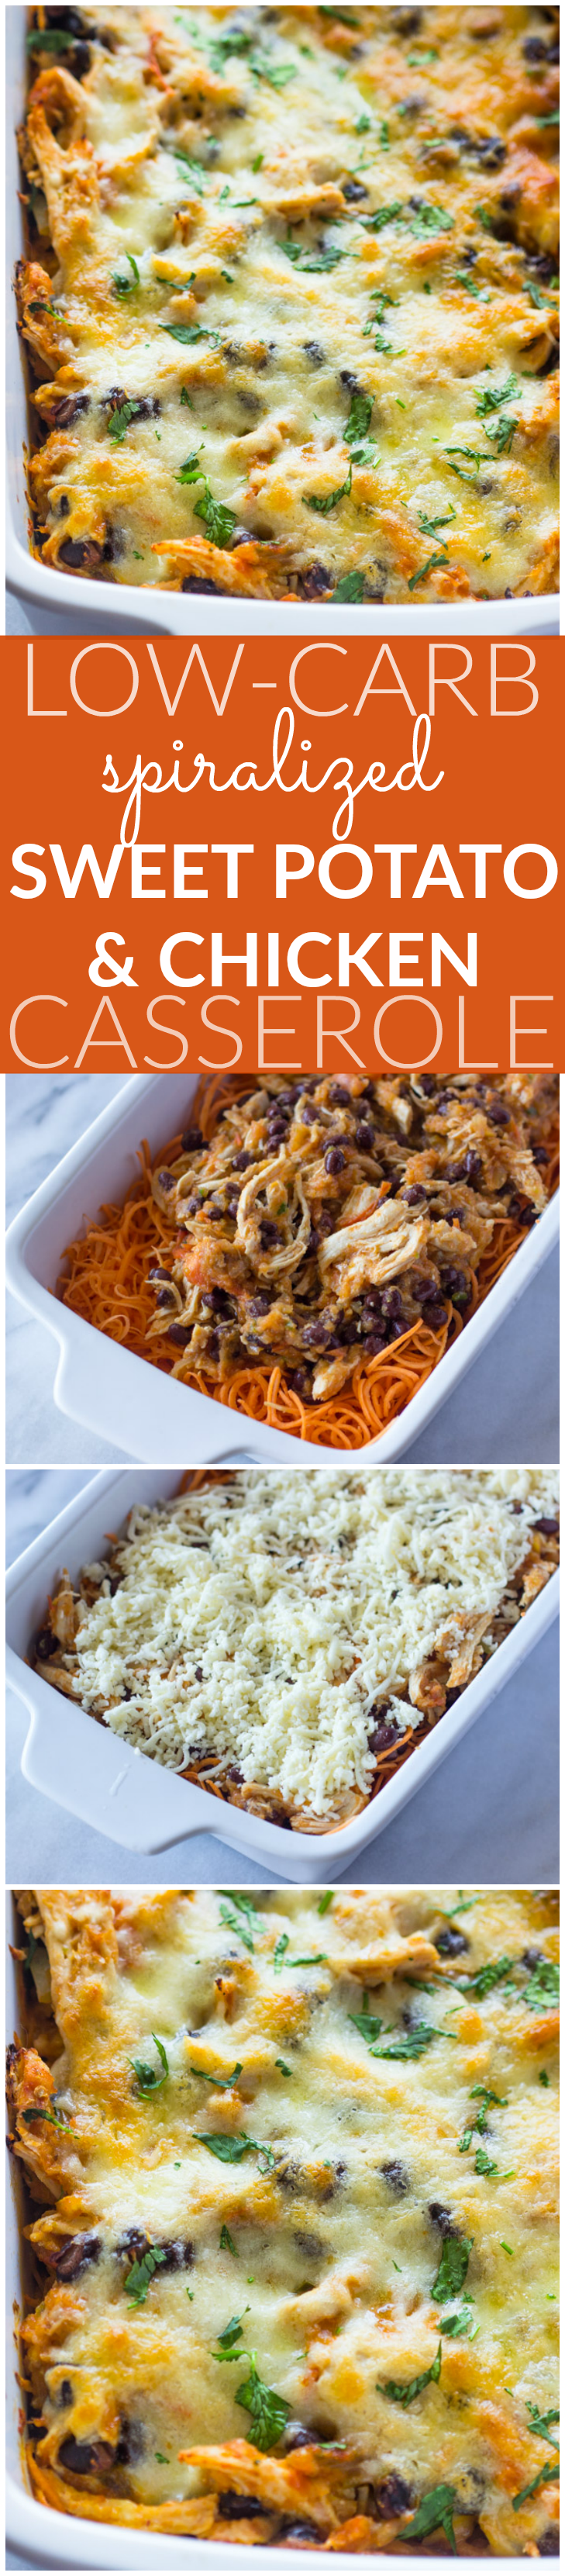 Tex-Mex Spiralized Sweet Potato & Chicken Casserole (Low-Carb, Healthy)